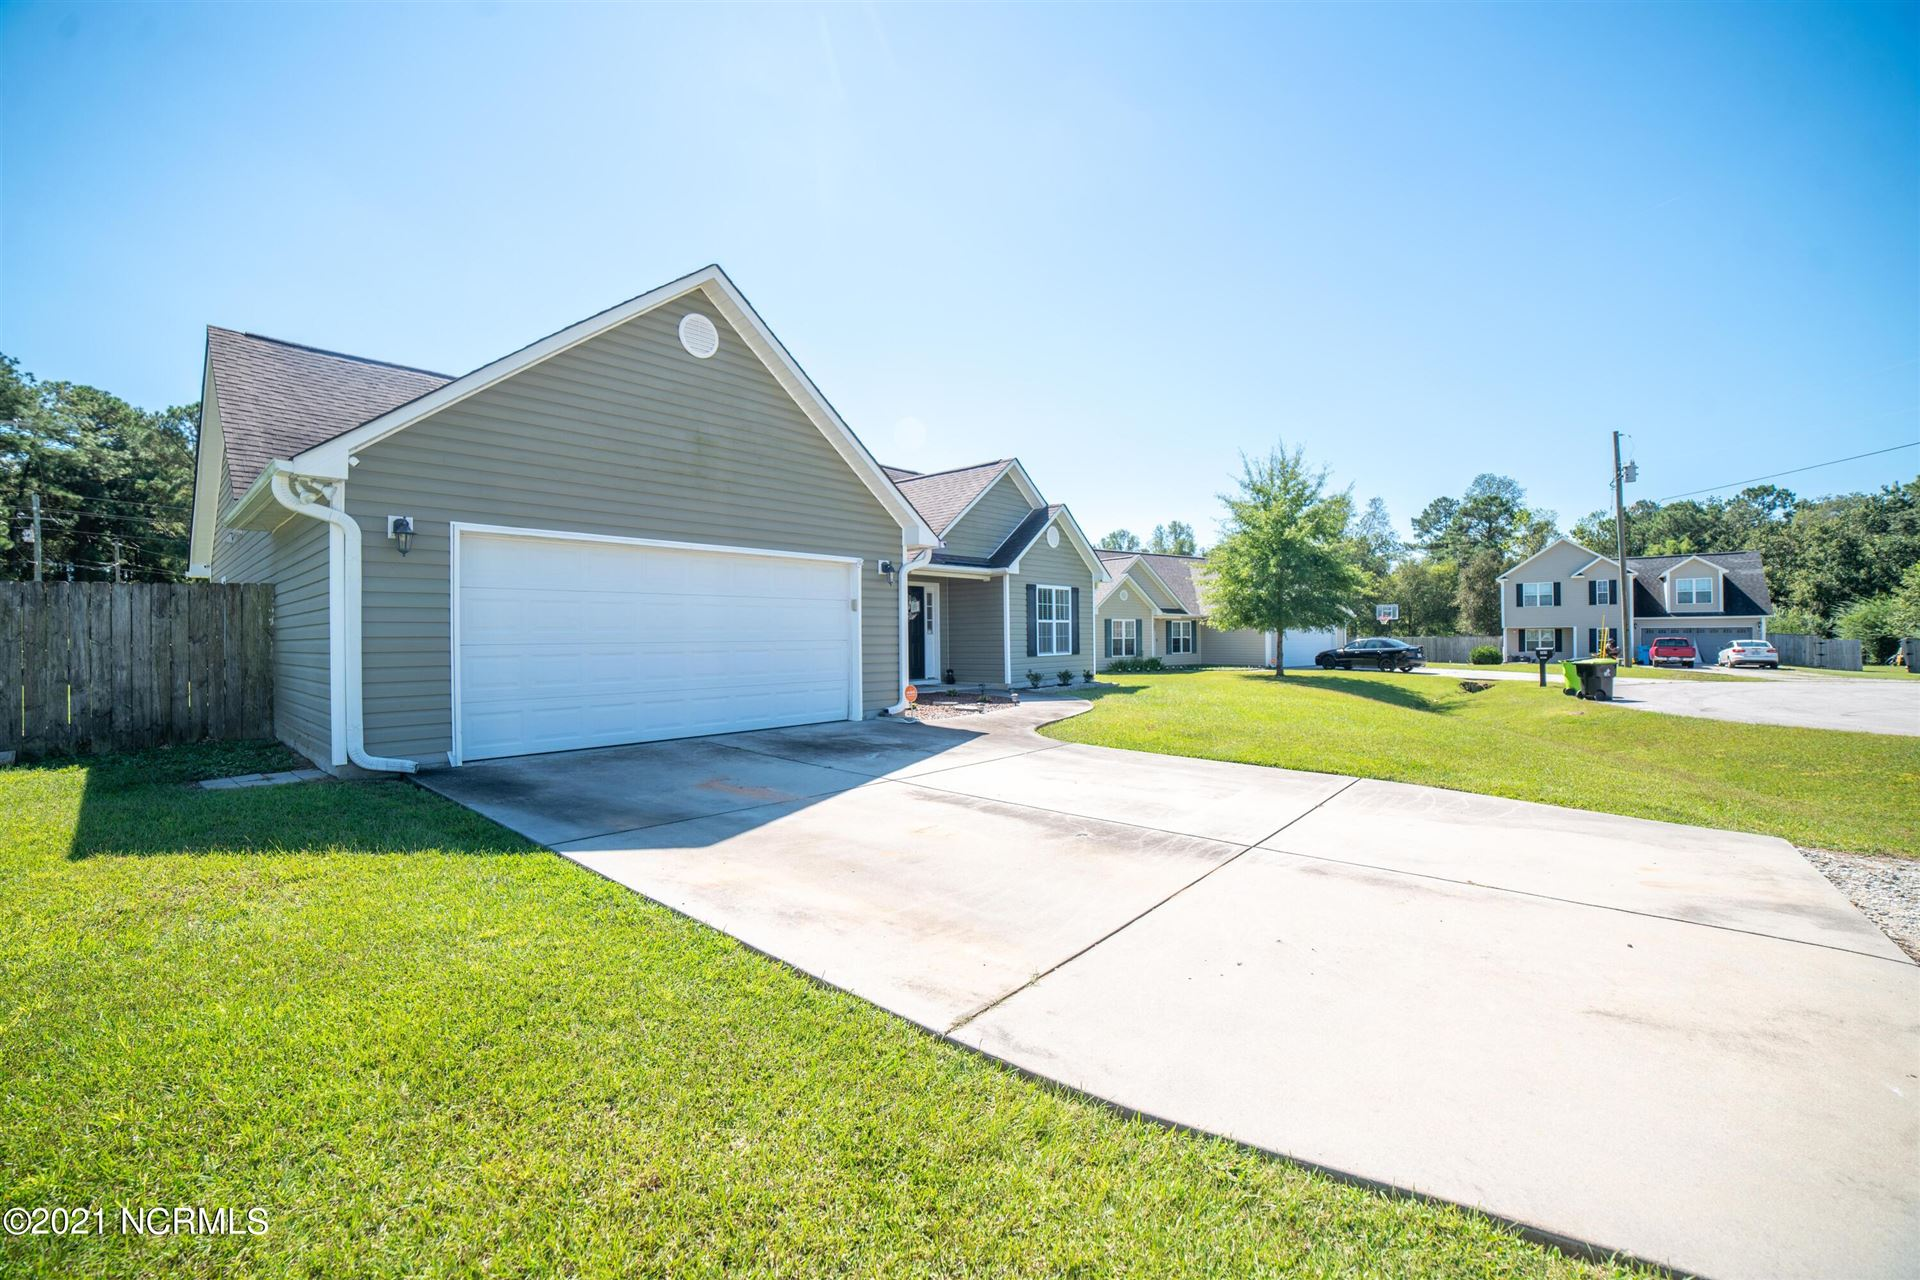 Photo of 301 Cherry Blossom Court, Richlands, NC 28574 (MLS # 100292708)